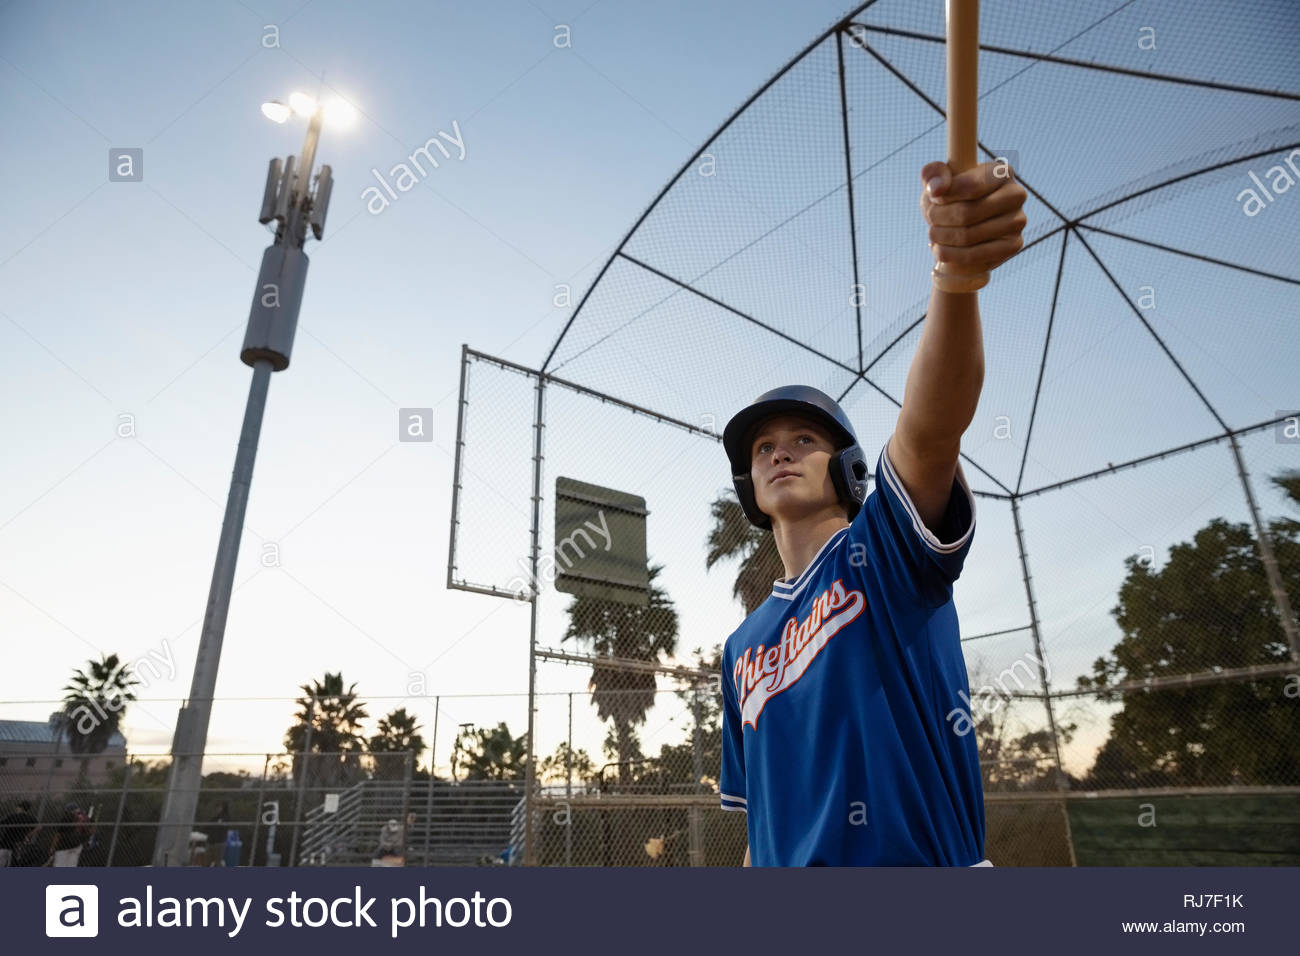 Determined baseball player at bat on field at night - Stock Image